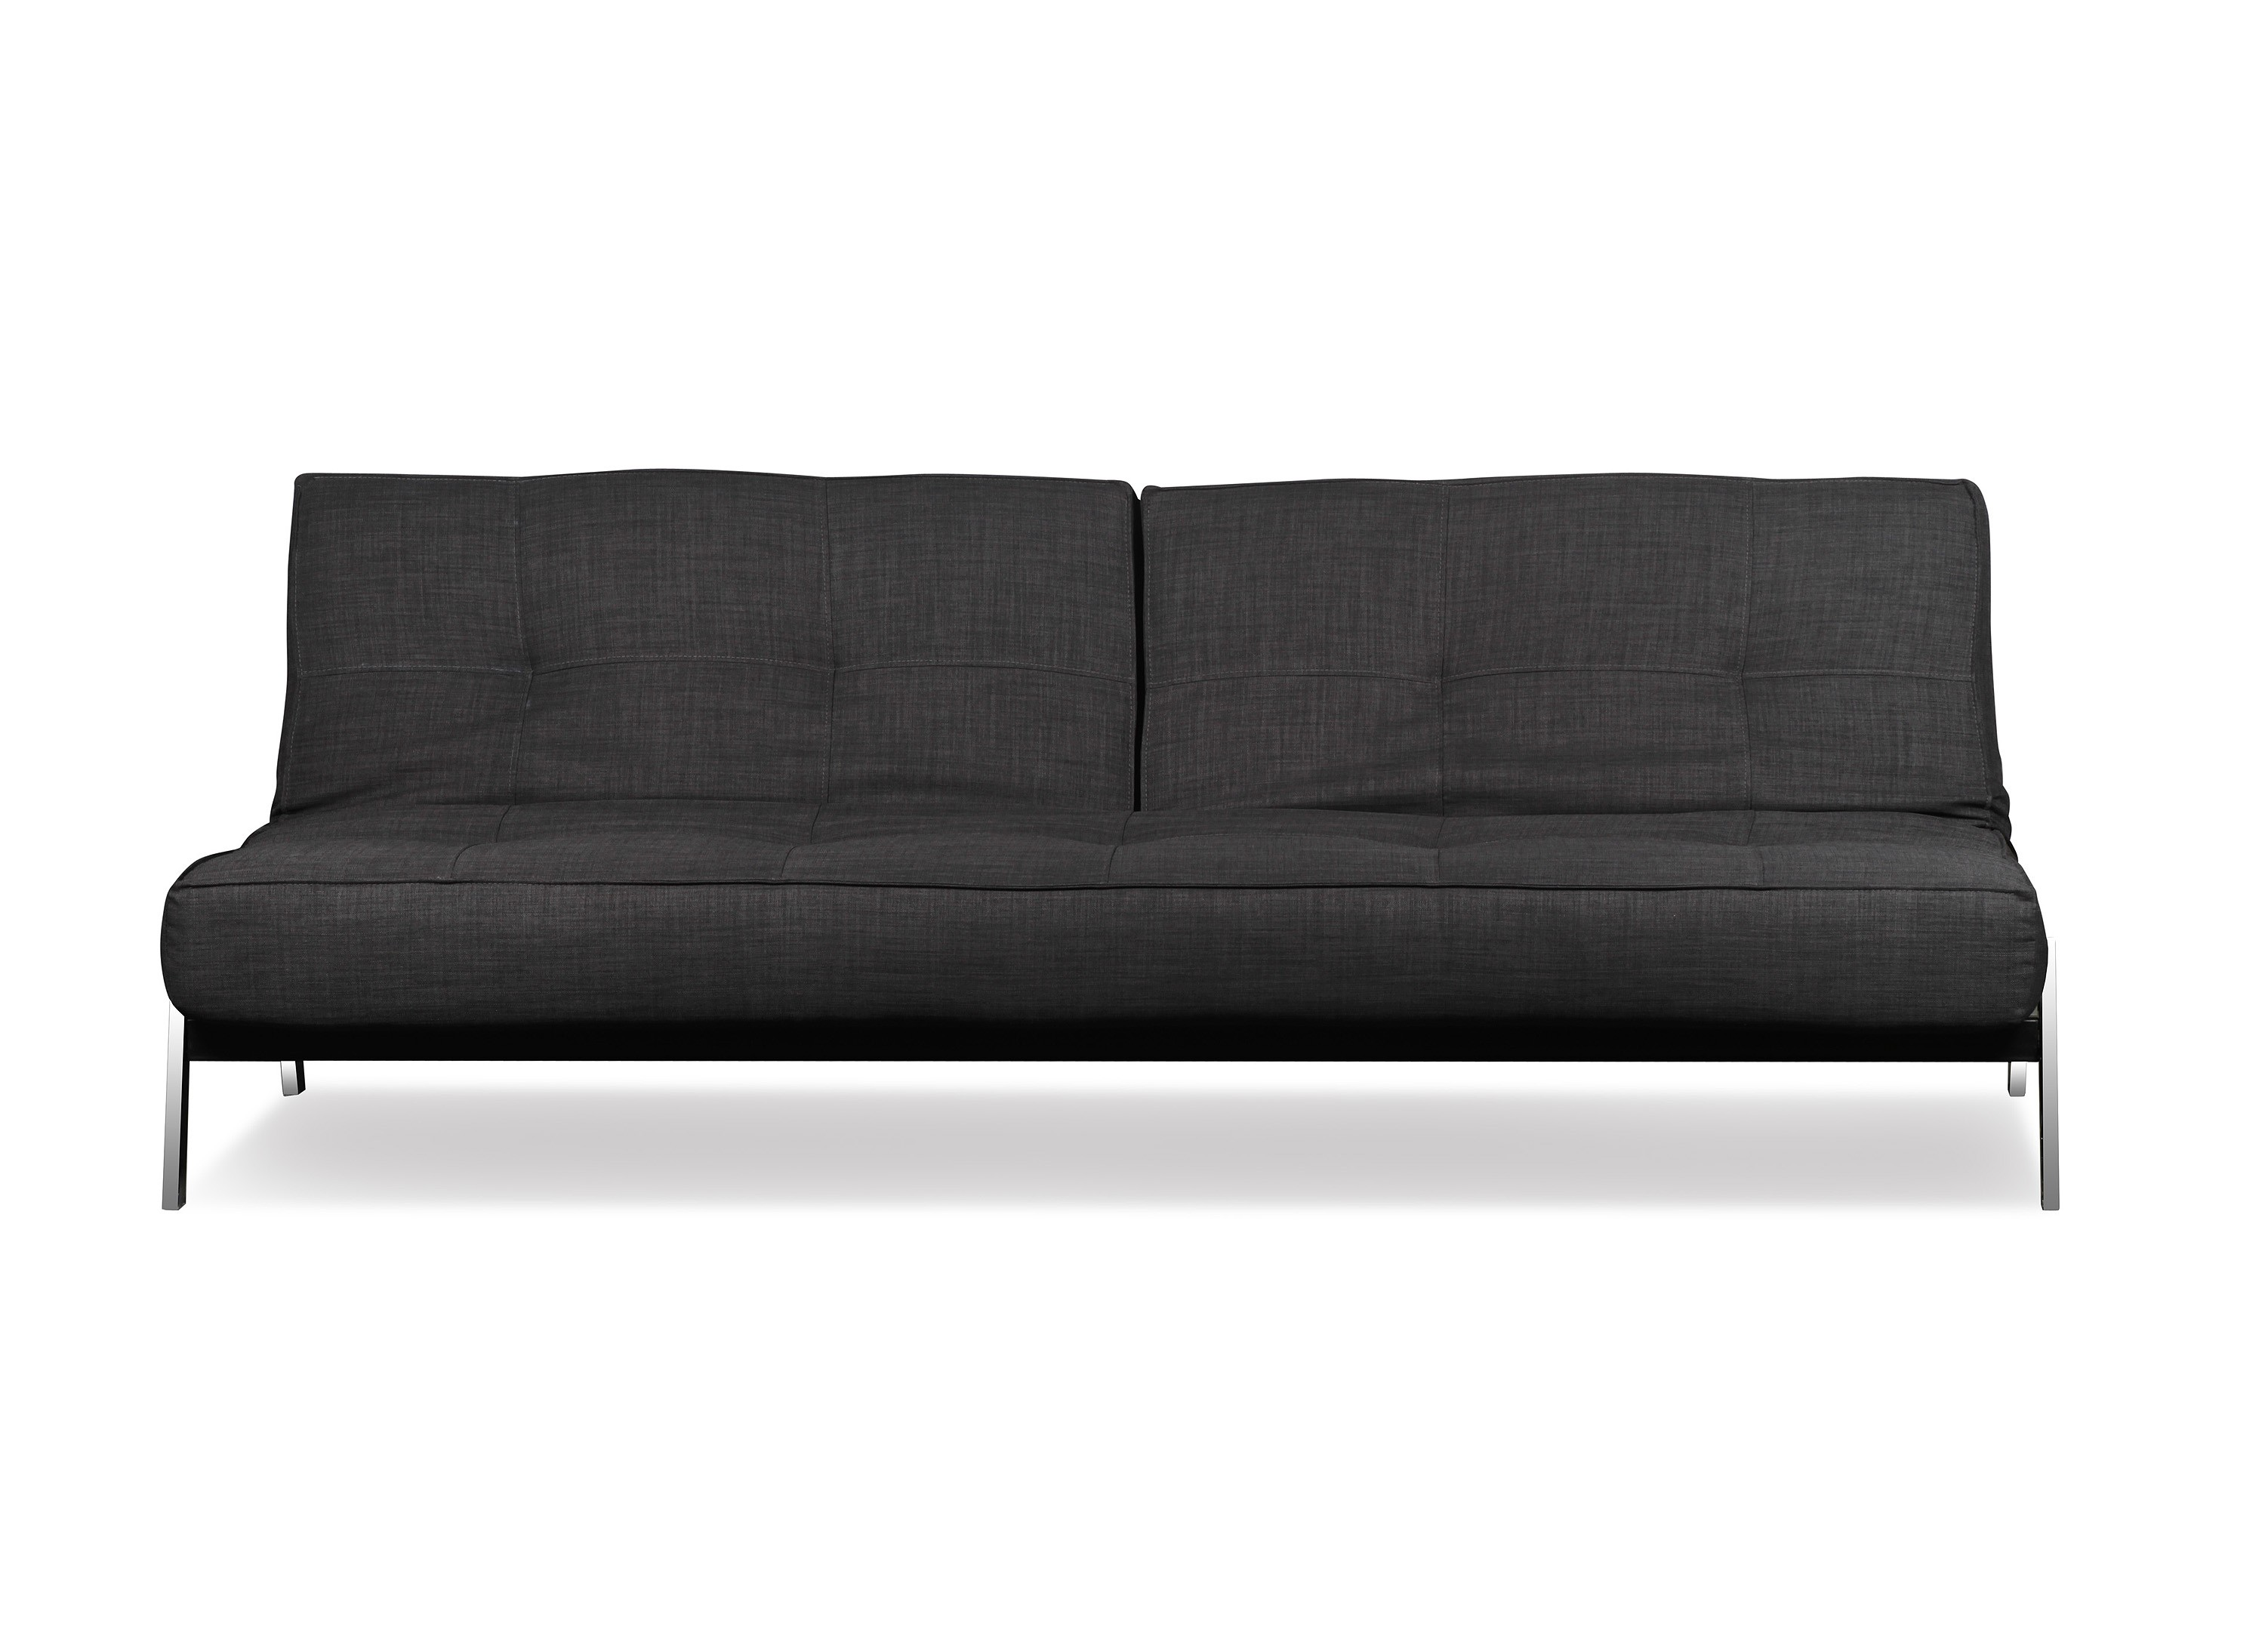 Sofa Conforama Sevilla Sofa Beds Sydney Sofa Beds Melbourne Bravo Furniture